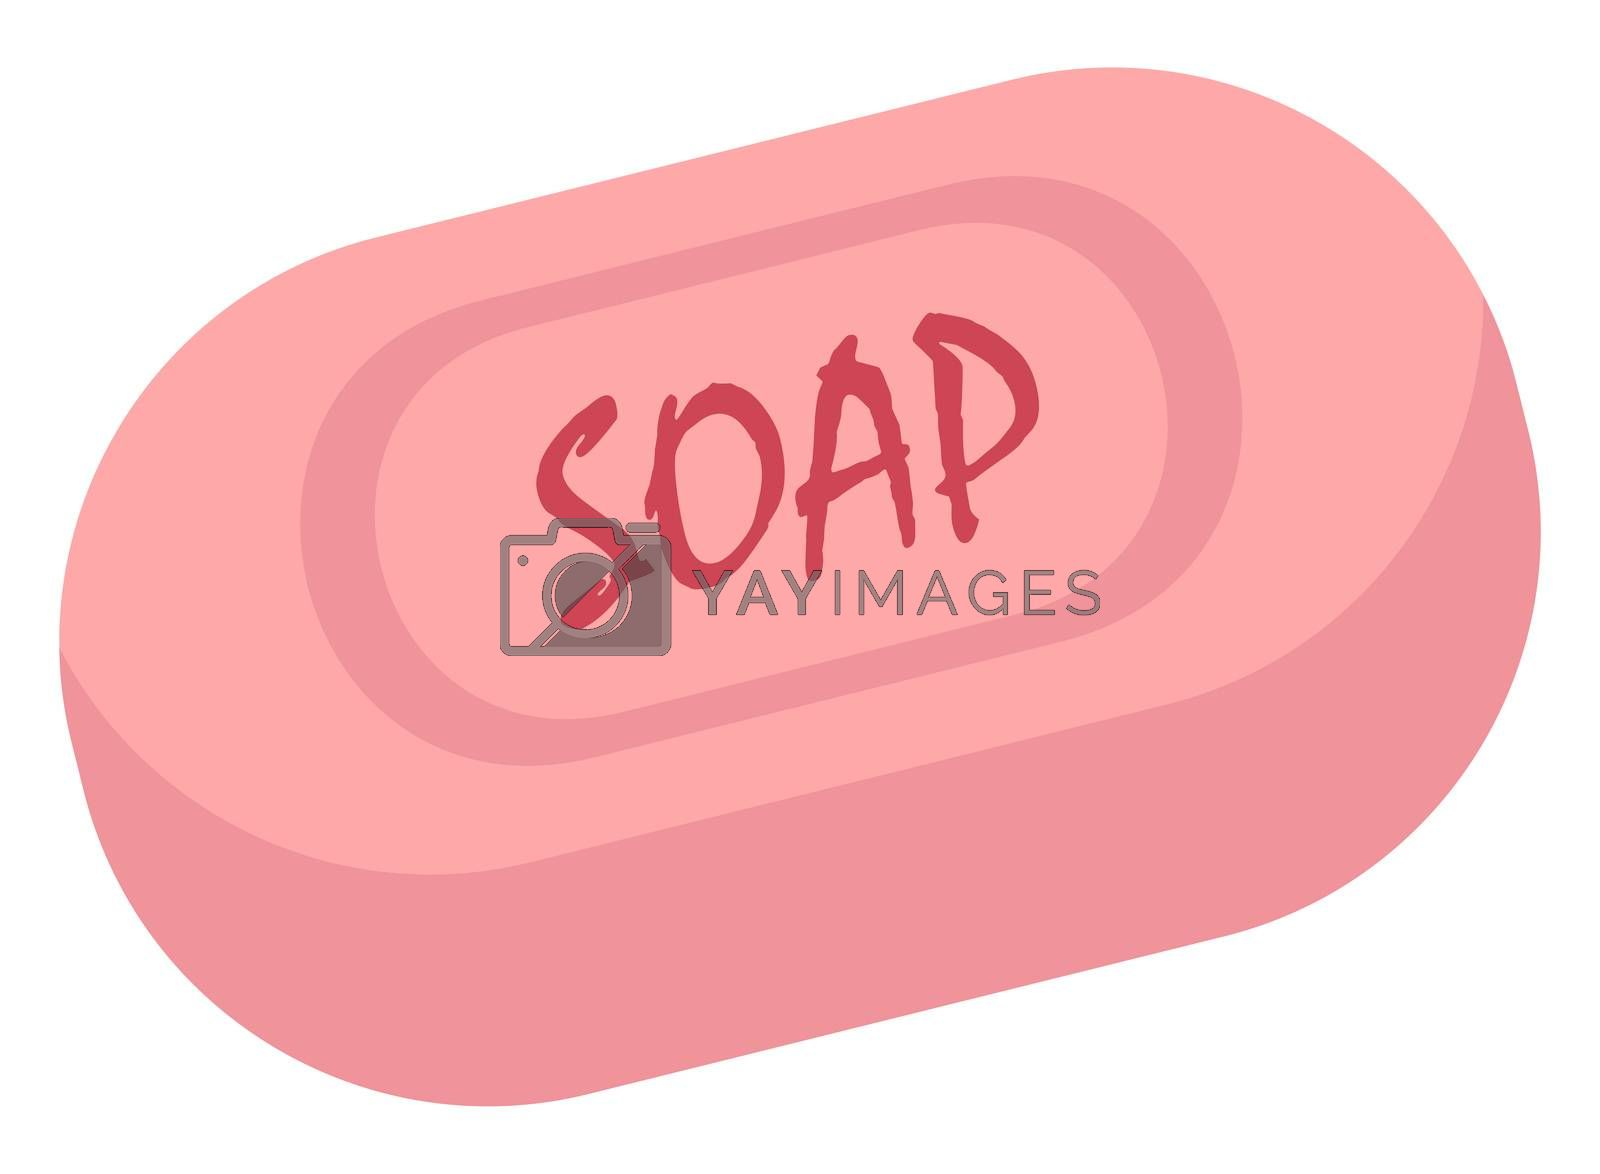 Hand  soap, illustration, vector on white background